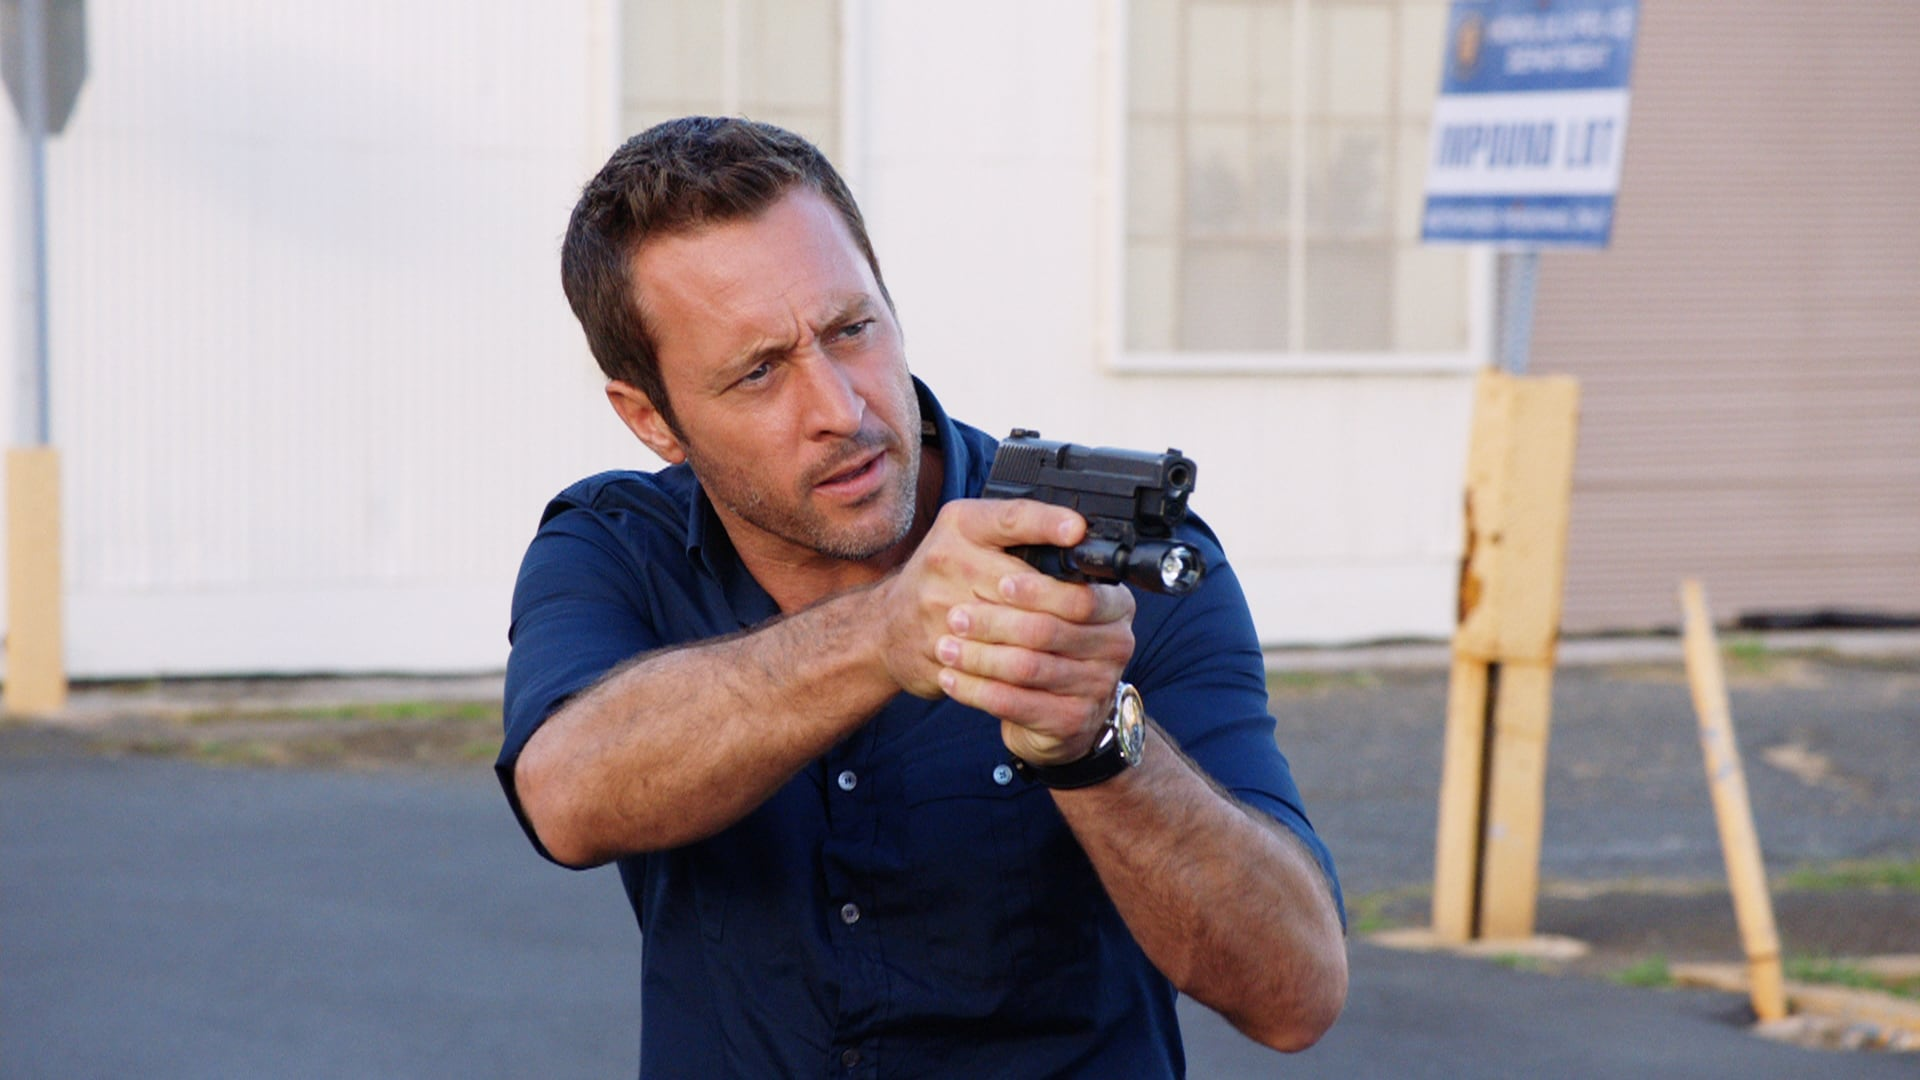 Hawaii Five-0 - Season 7 Episode 9 : elua La Ma Nowemapa (Two Days in November)